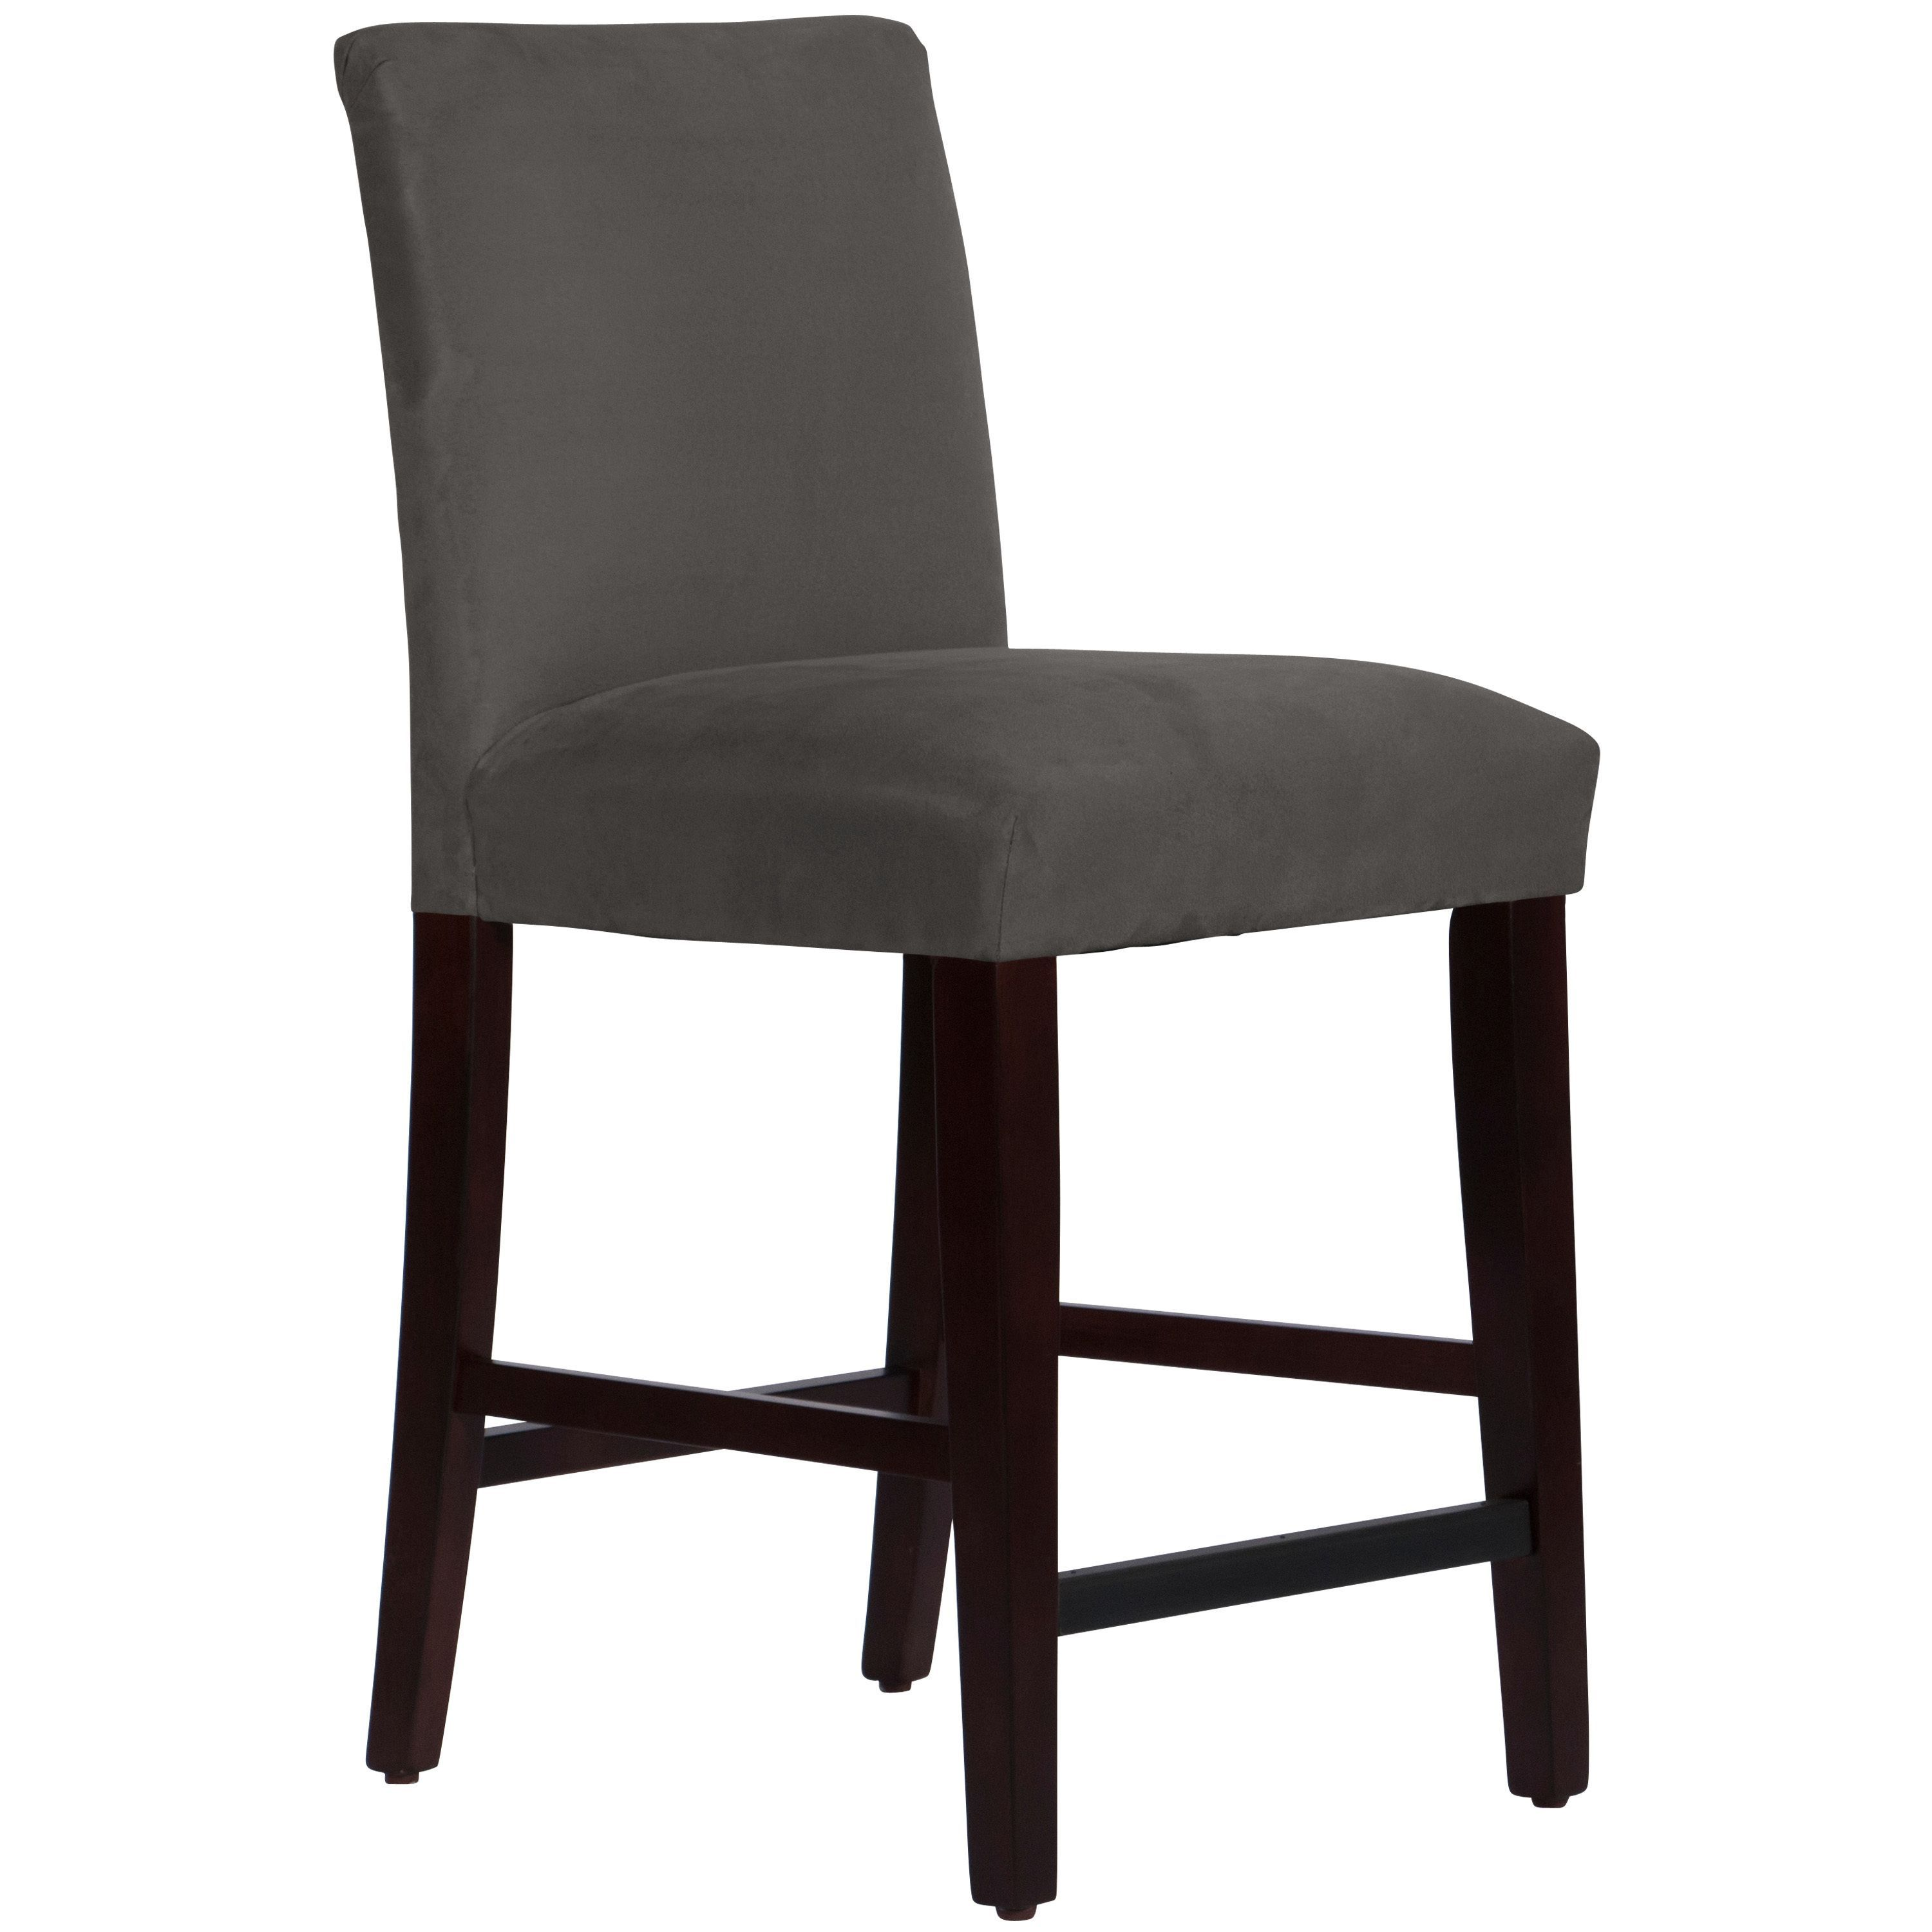 Awe Inspiring Skyline Furniture Premier Charcoal Uptown Counter Stool Gmtry Best Dining Table And Chair Ideas Images Gmtryco